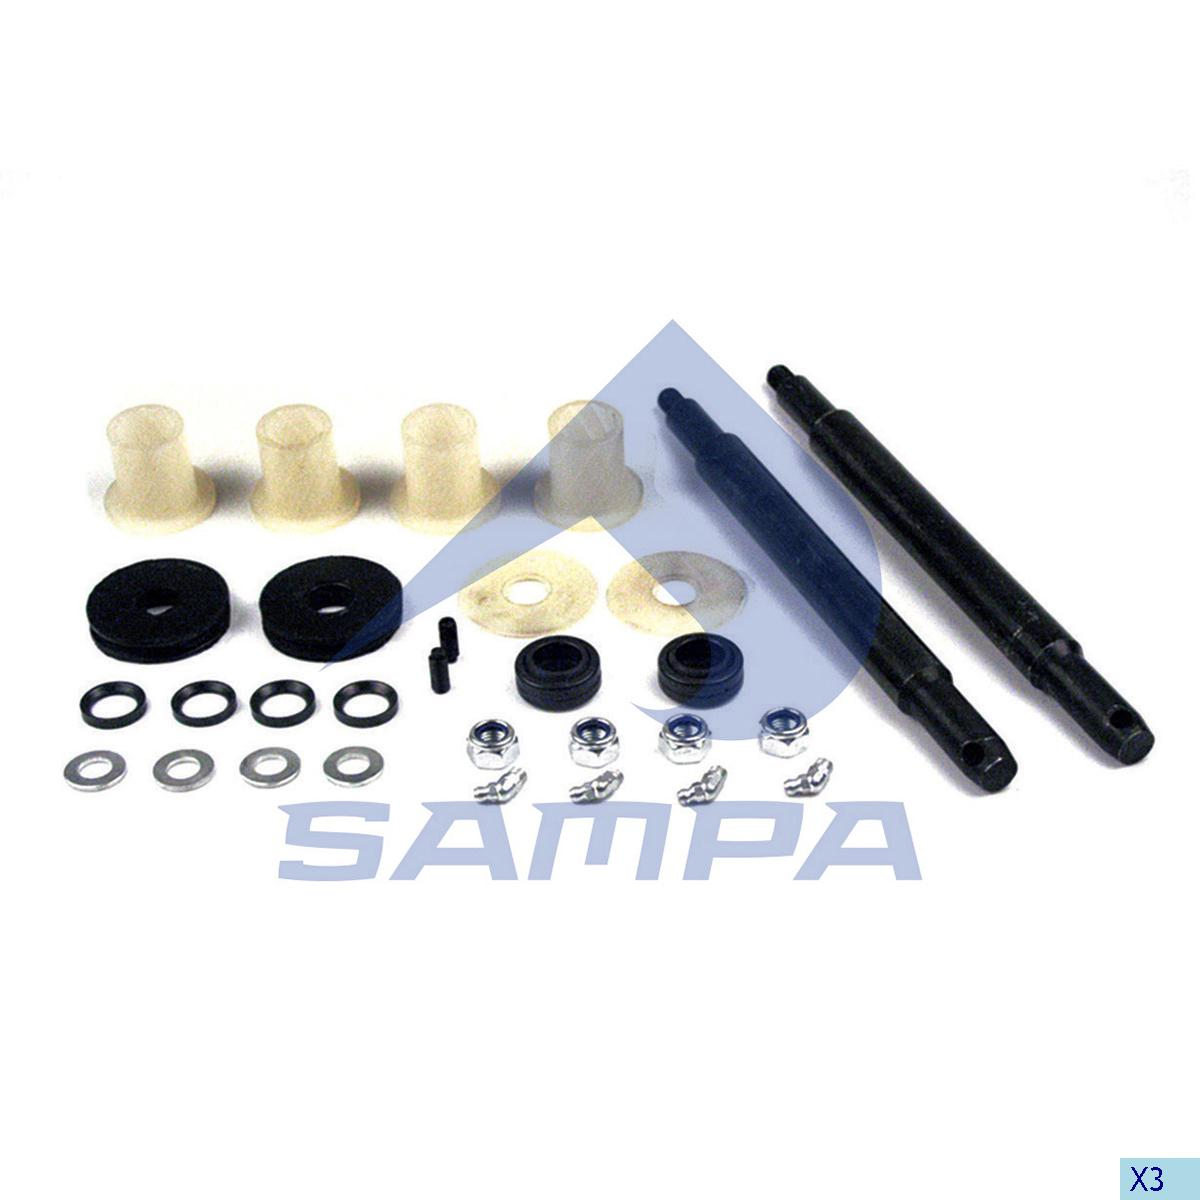 Repair Kit, Cab, Mercedes, Cab